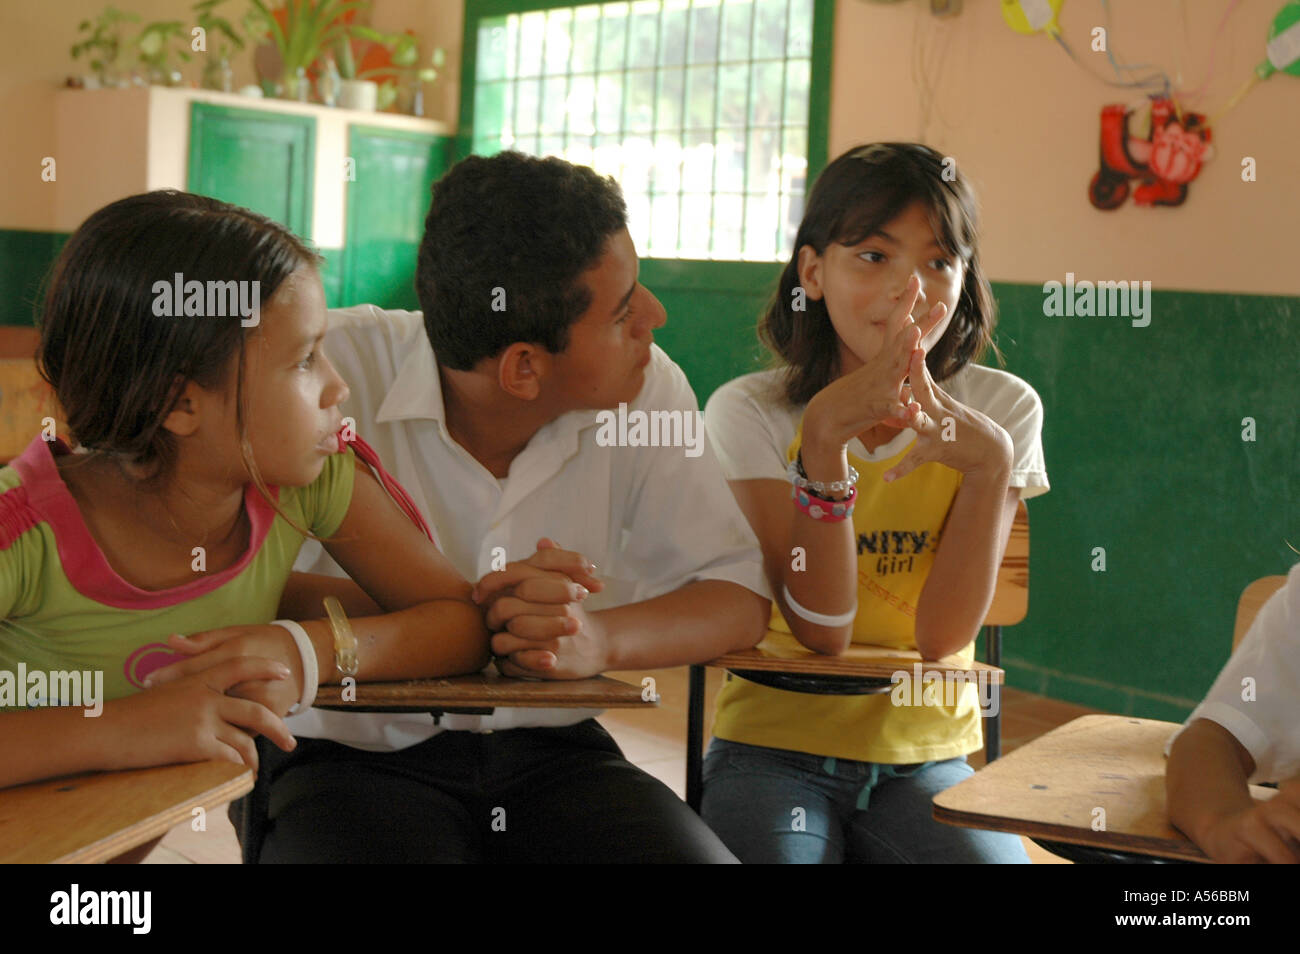 Painet iy8251 students colombia extracurricular seminar middle school paz barrancabermeja children kids discuss - Stock Image